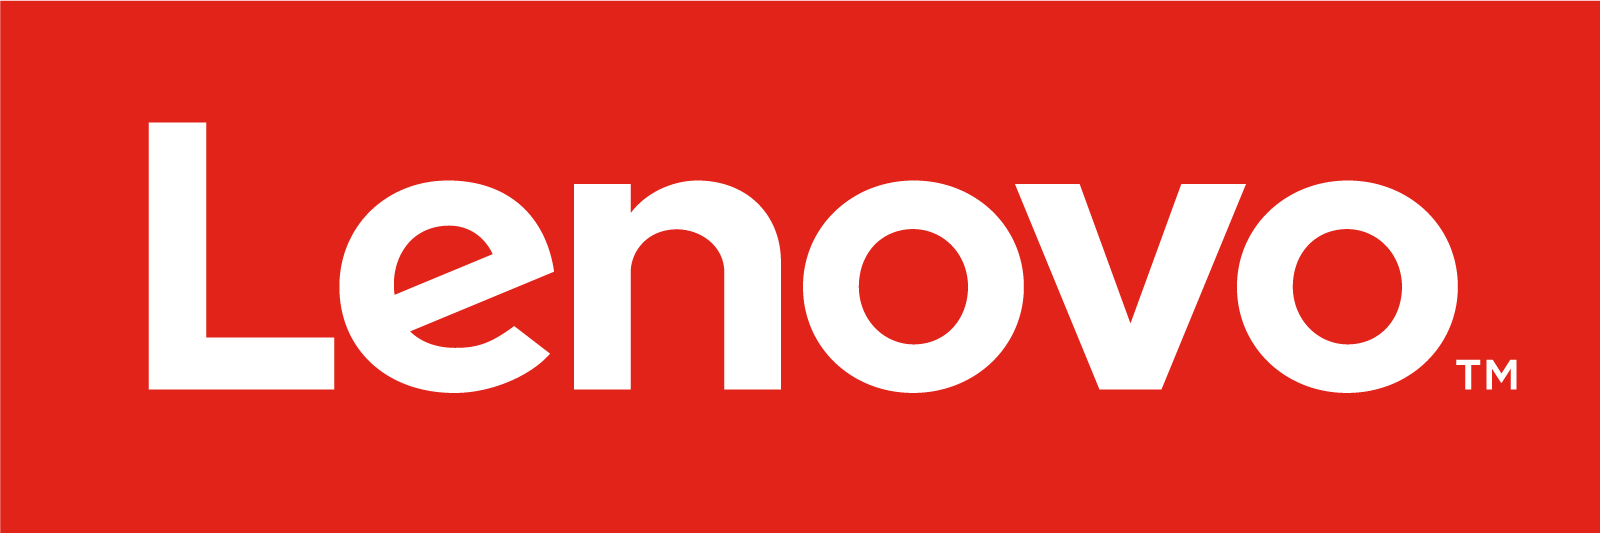 For Productivity of SMEs, Lenovo Offers New ThinkVision Monitors